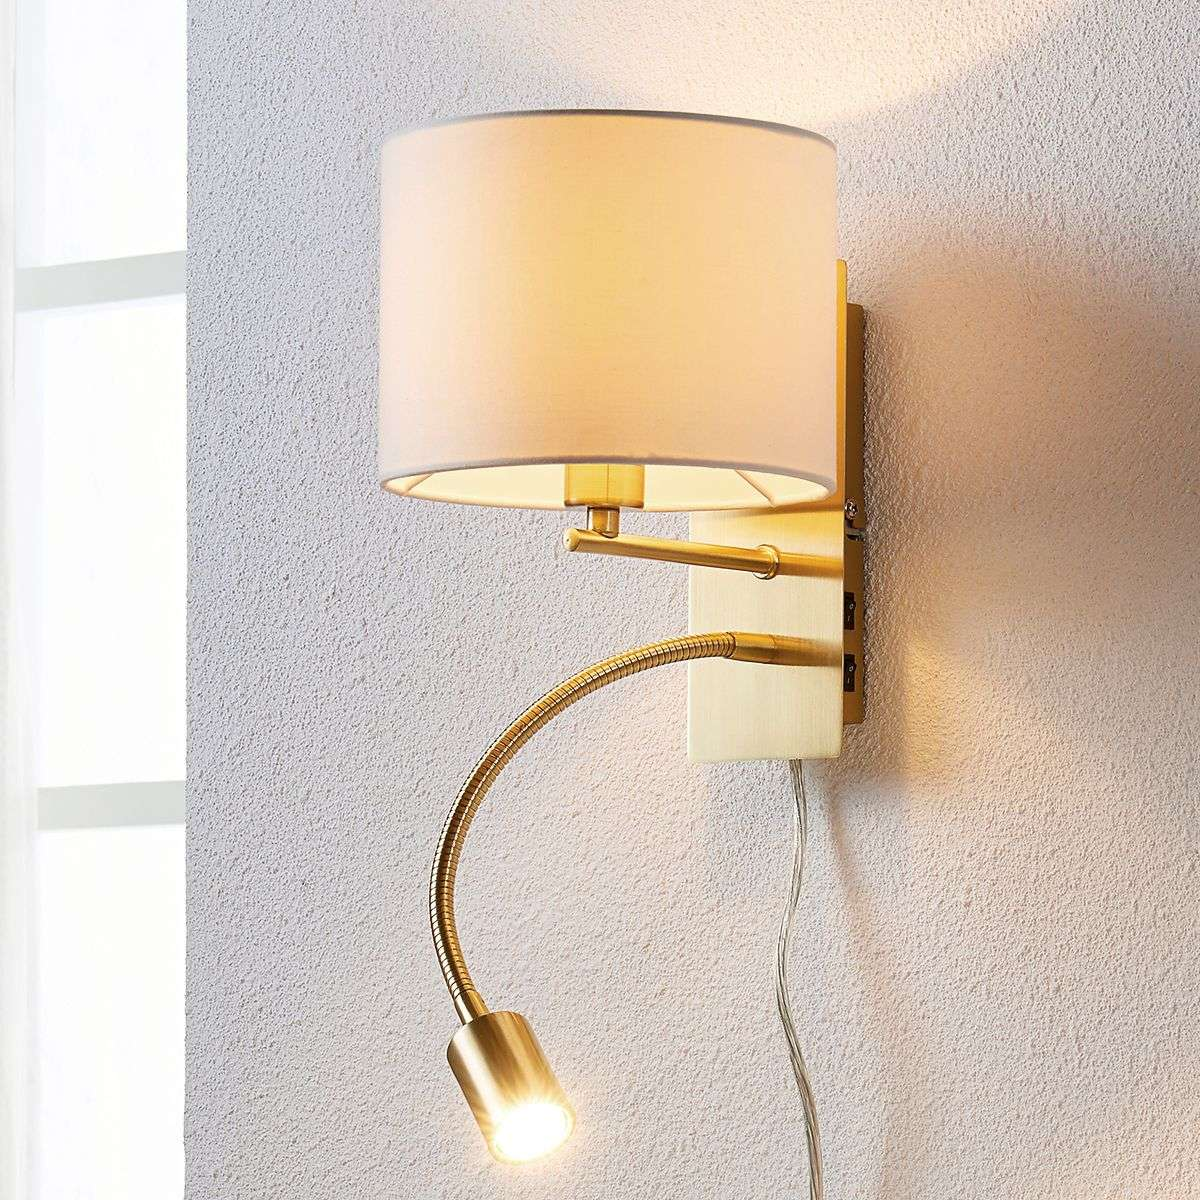 Led Wall Reading Light: Brass-coloured Wall Lamp Florens LED Reading Light